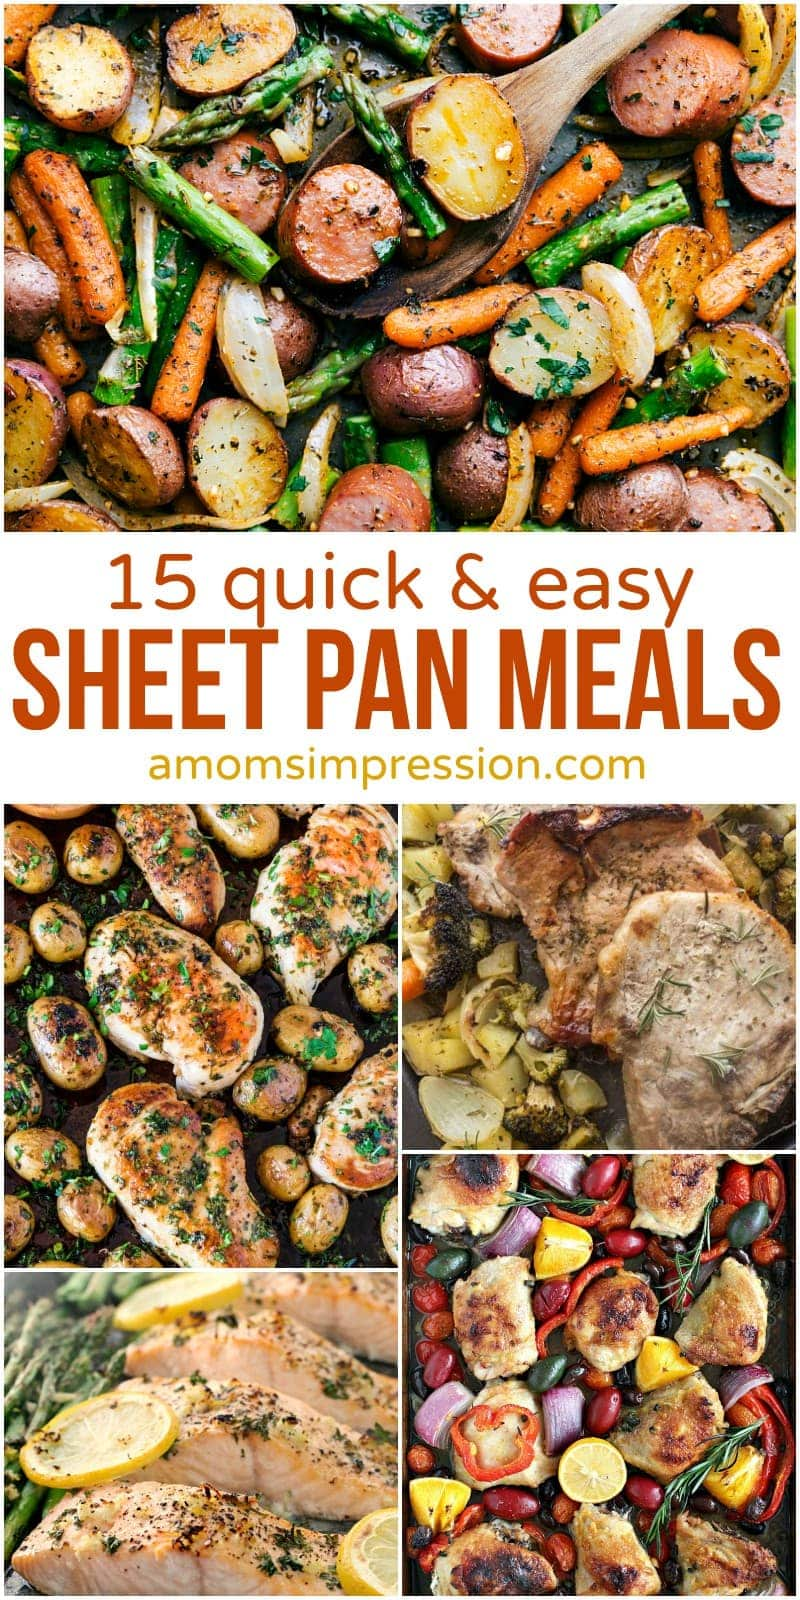 These quick and easy sheet pan meals are delicious and can be made on one sheet pan, main course, sides and everything making cleanup a breeze!